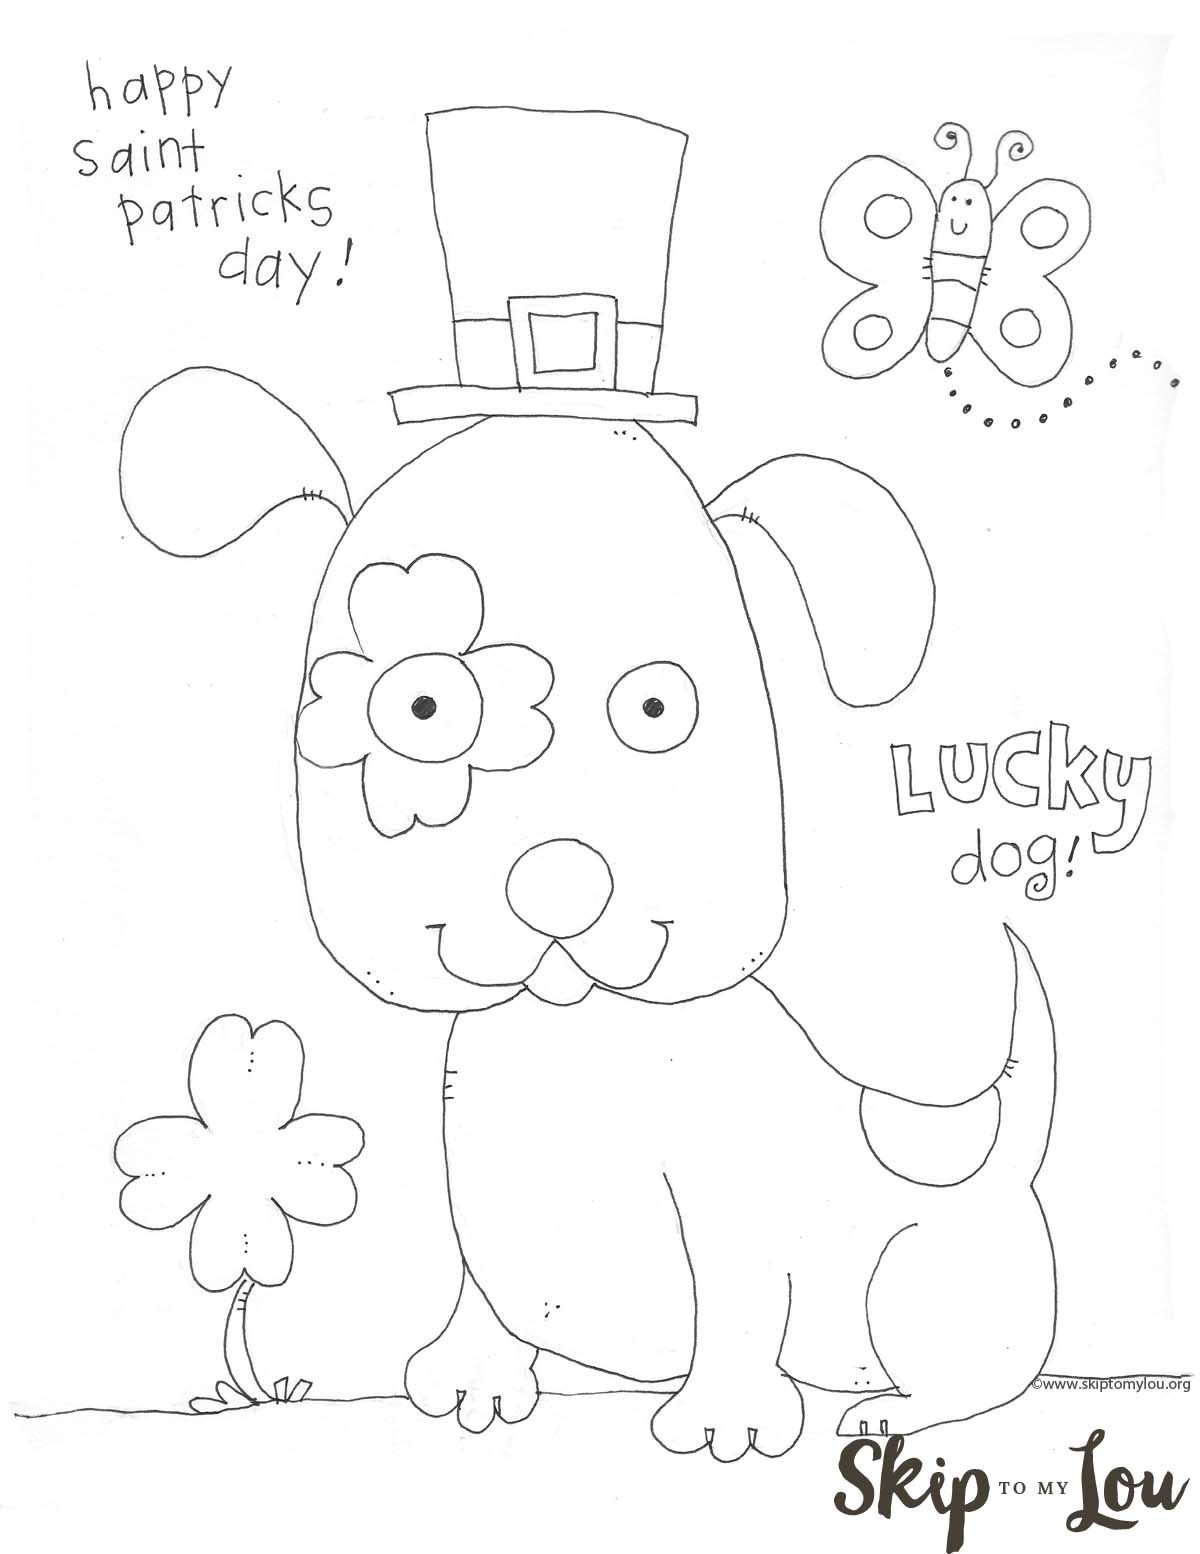 free st patrick s day printable coloring pages - st patrick 39 s day coloring page preschool free printable